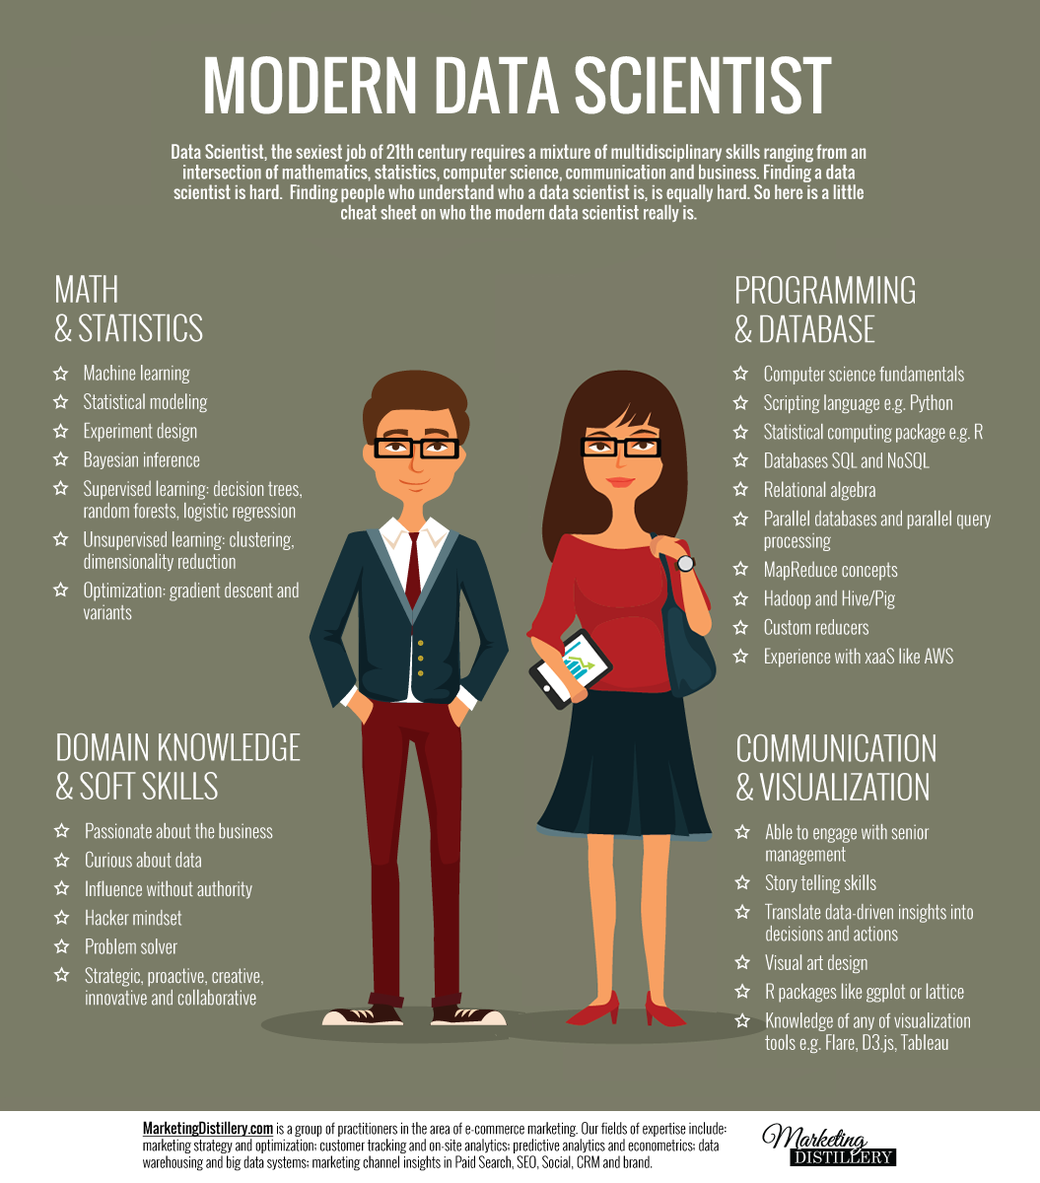 My Journey from Physics into Data Science - Towards Data Science